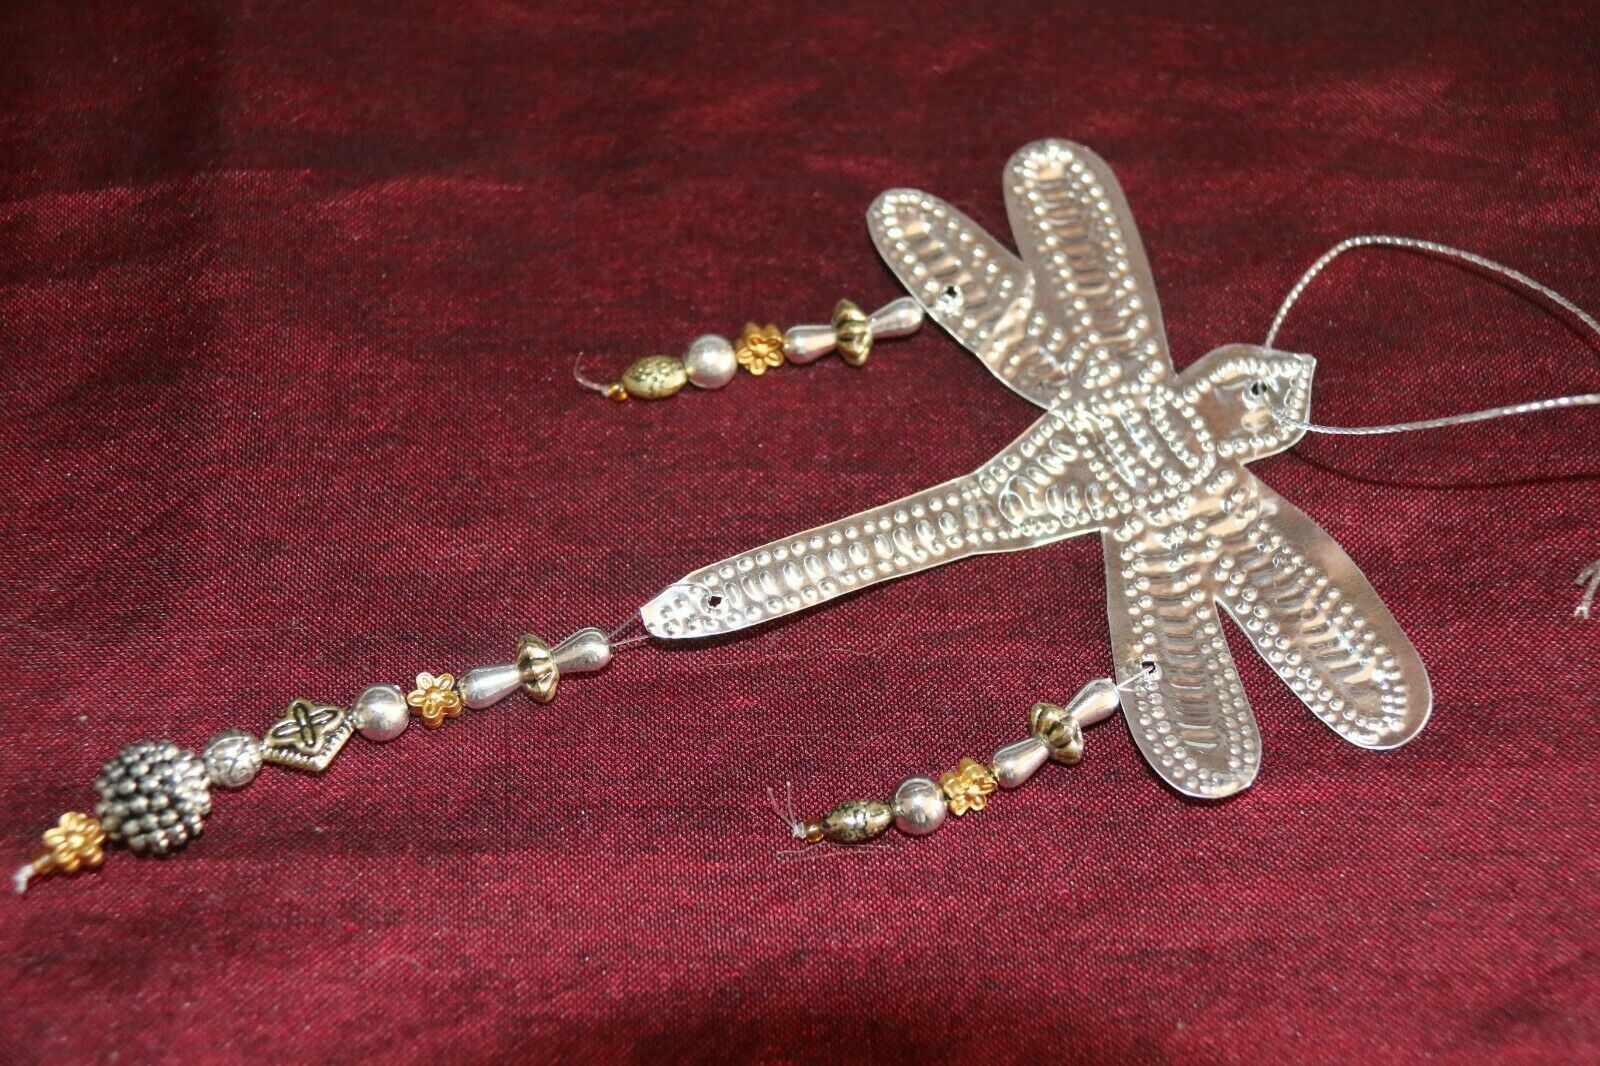 NEW Balinese Hand Crafted Dragonfly Aluminium Hanging Decor - Dragonfly Hanging